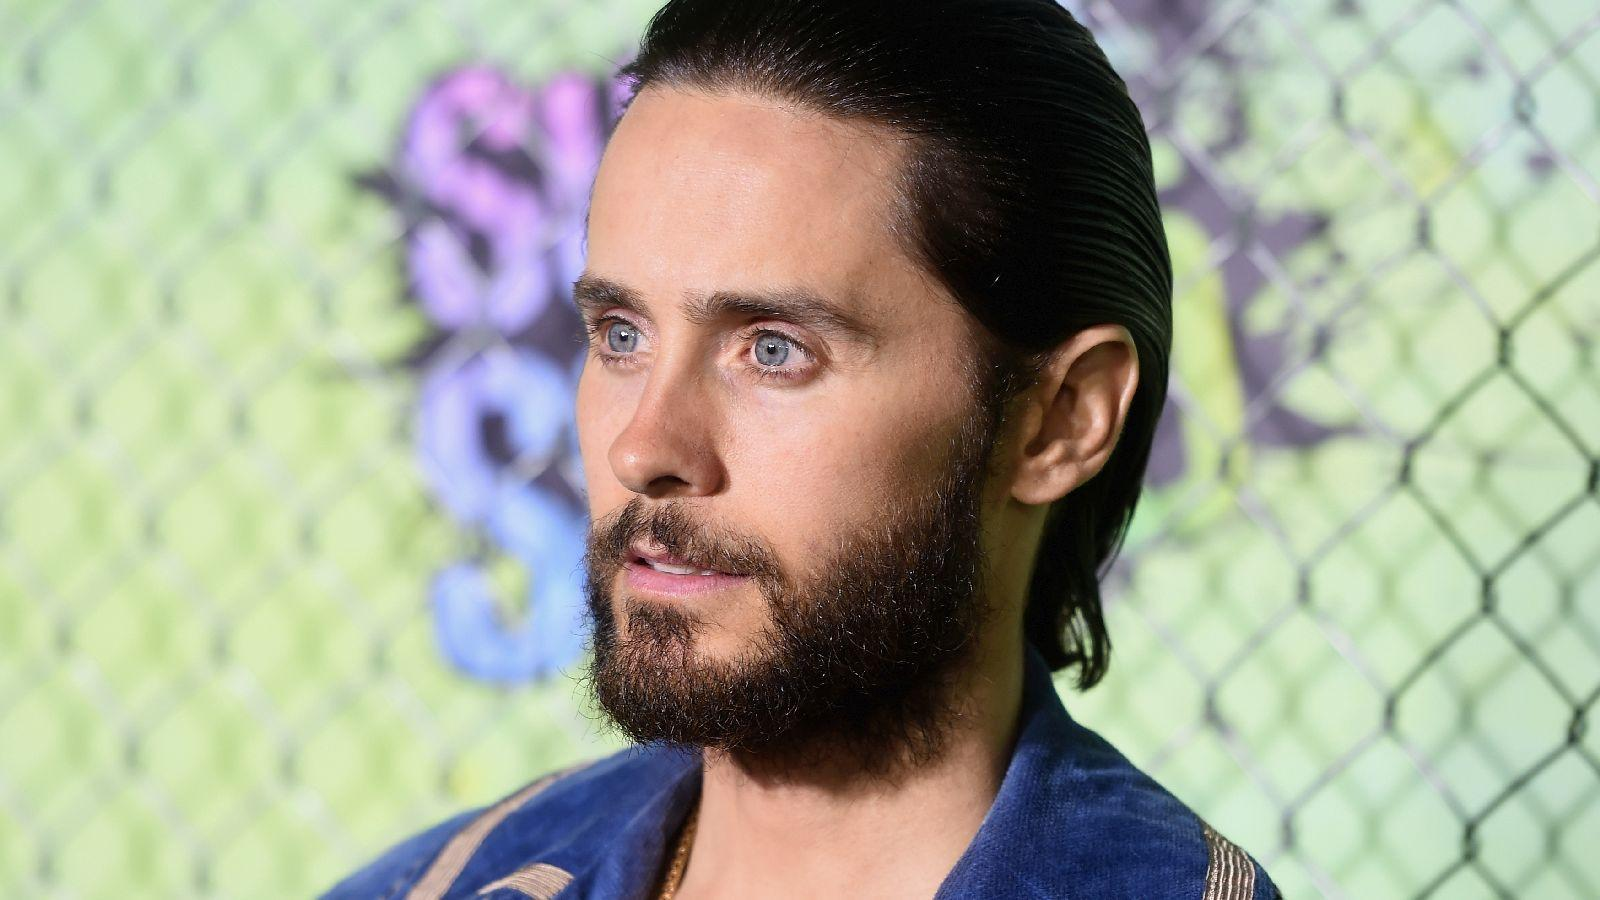 Jared Leto 45 éves. Bizony. (Getty Images)